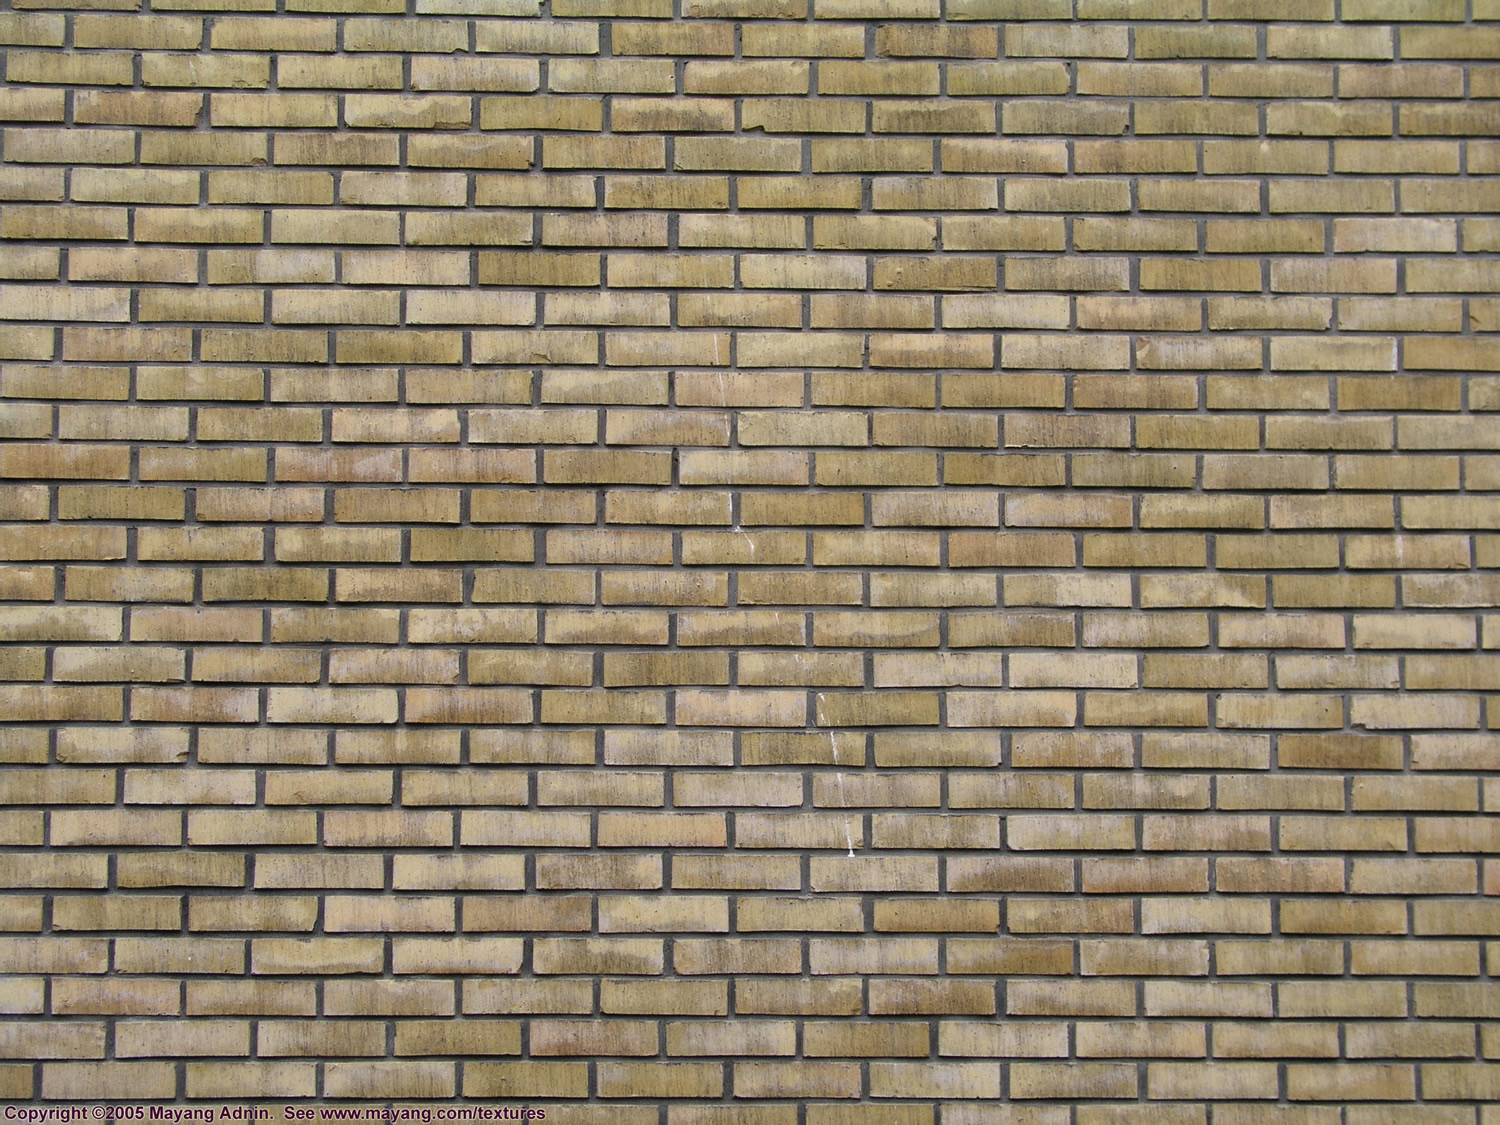 Download Free Images Brick Texture image #23877